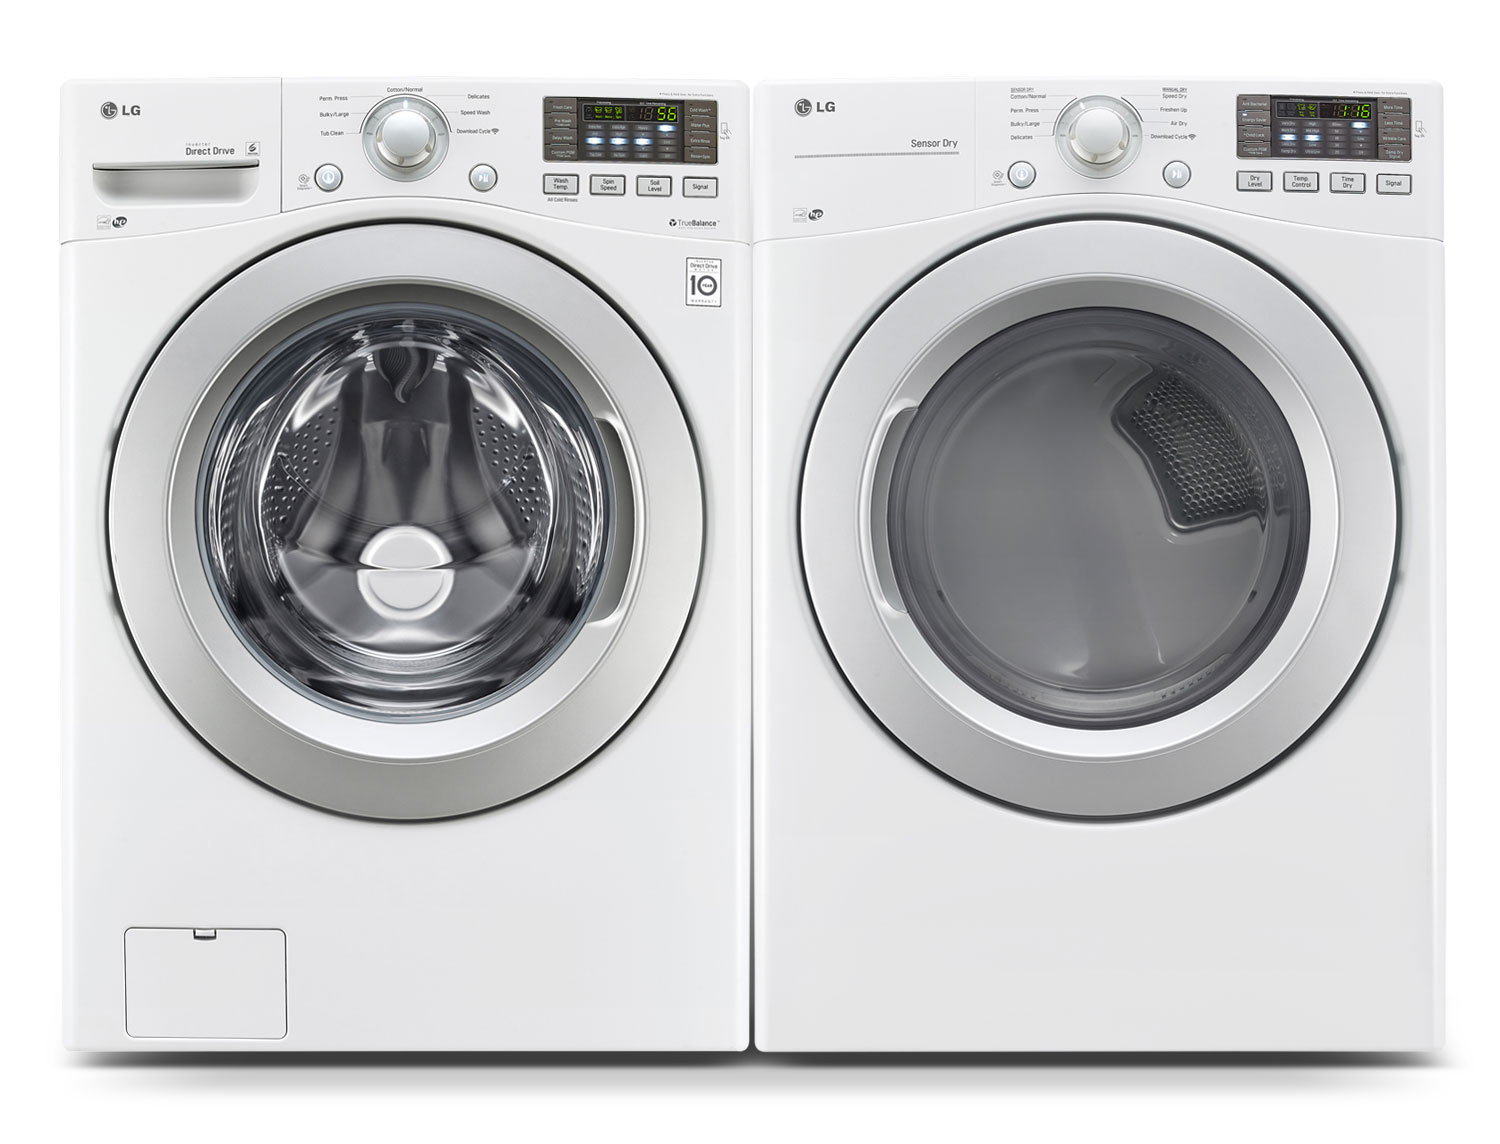 Washers and Dryers - LG 5.2 Cu. Ft. Front-Load Washer and 7.4 Cu. Ft. Electric Dryer – White